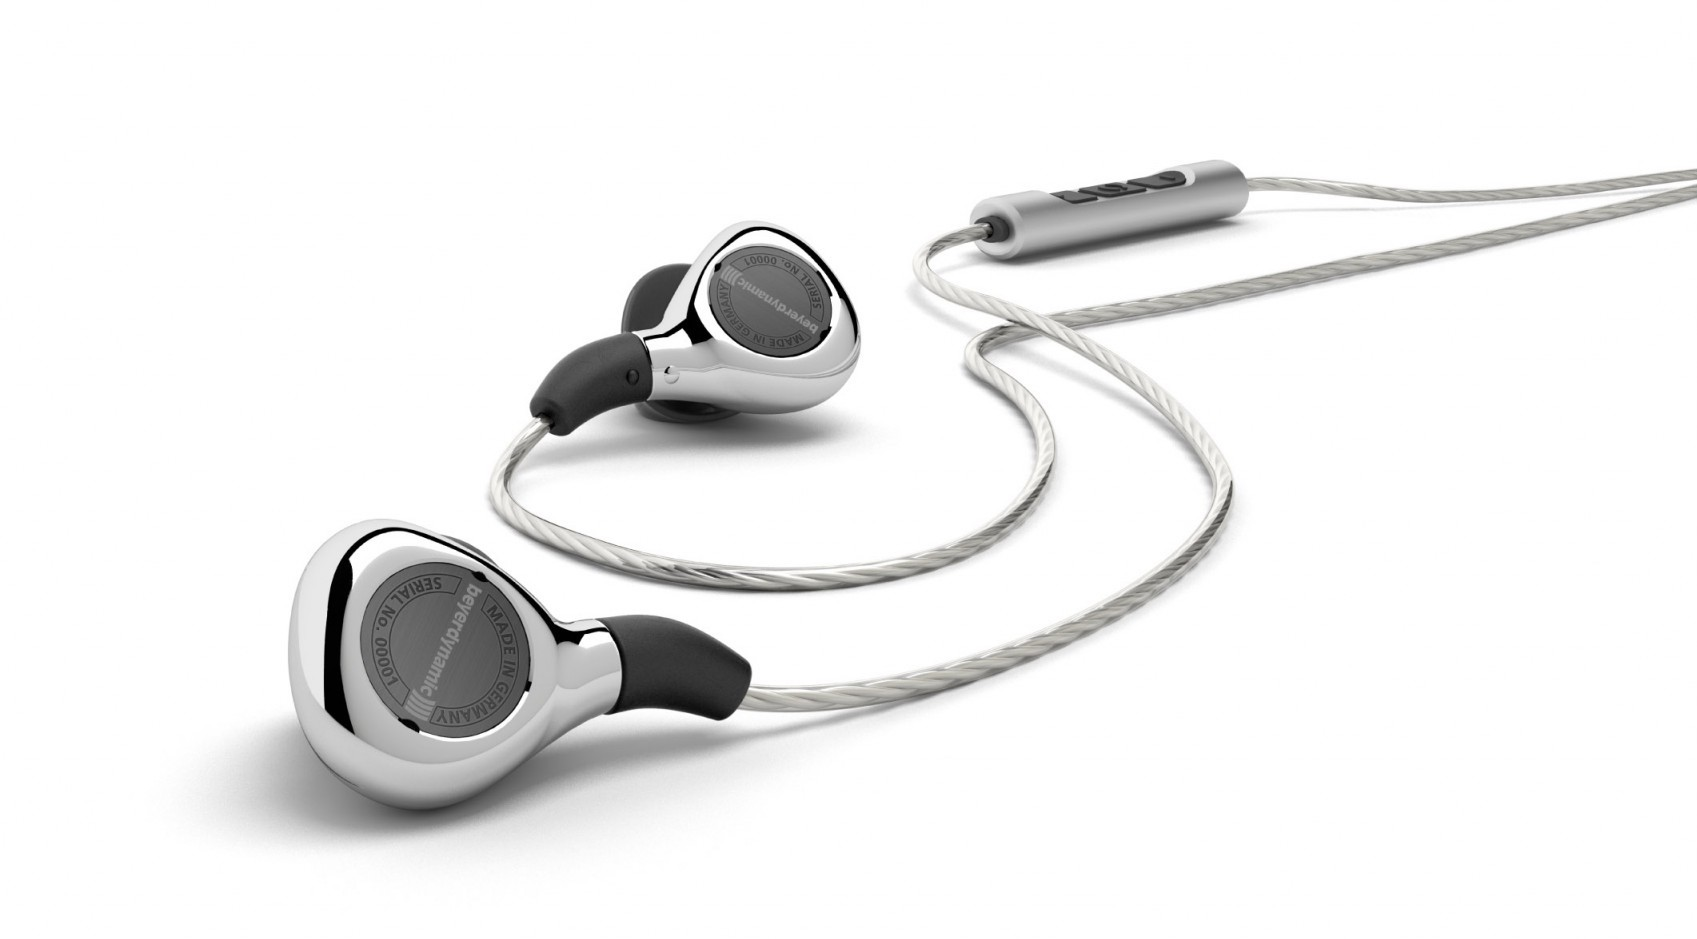 beyerdynamic Xelento Remote-audiophile-inear-headphone-headfi-highend